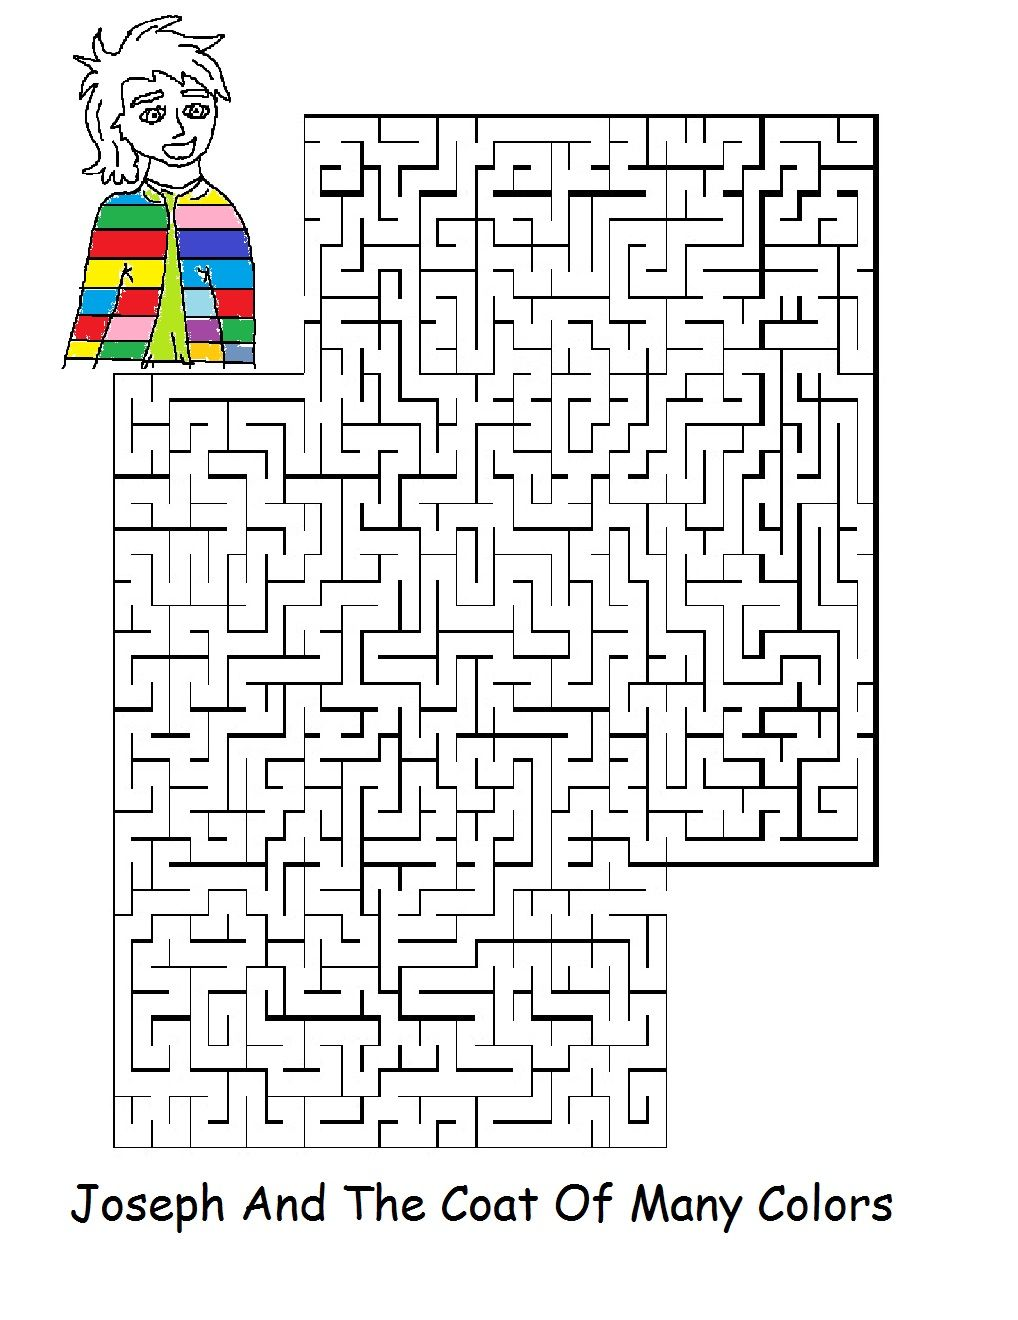 Printable coloring pages joseph coat - Joseph And The Coat Of Many Colors Sunday School Lesson